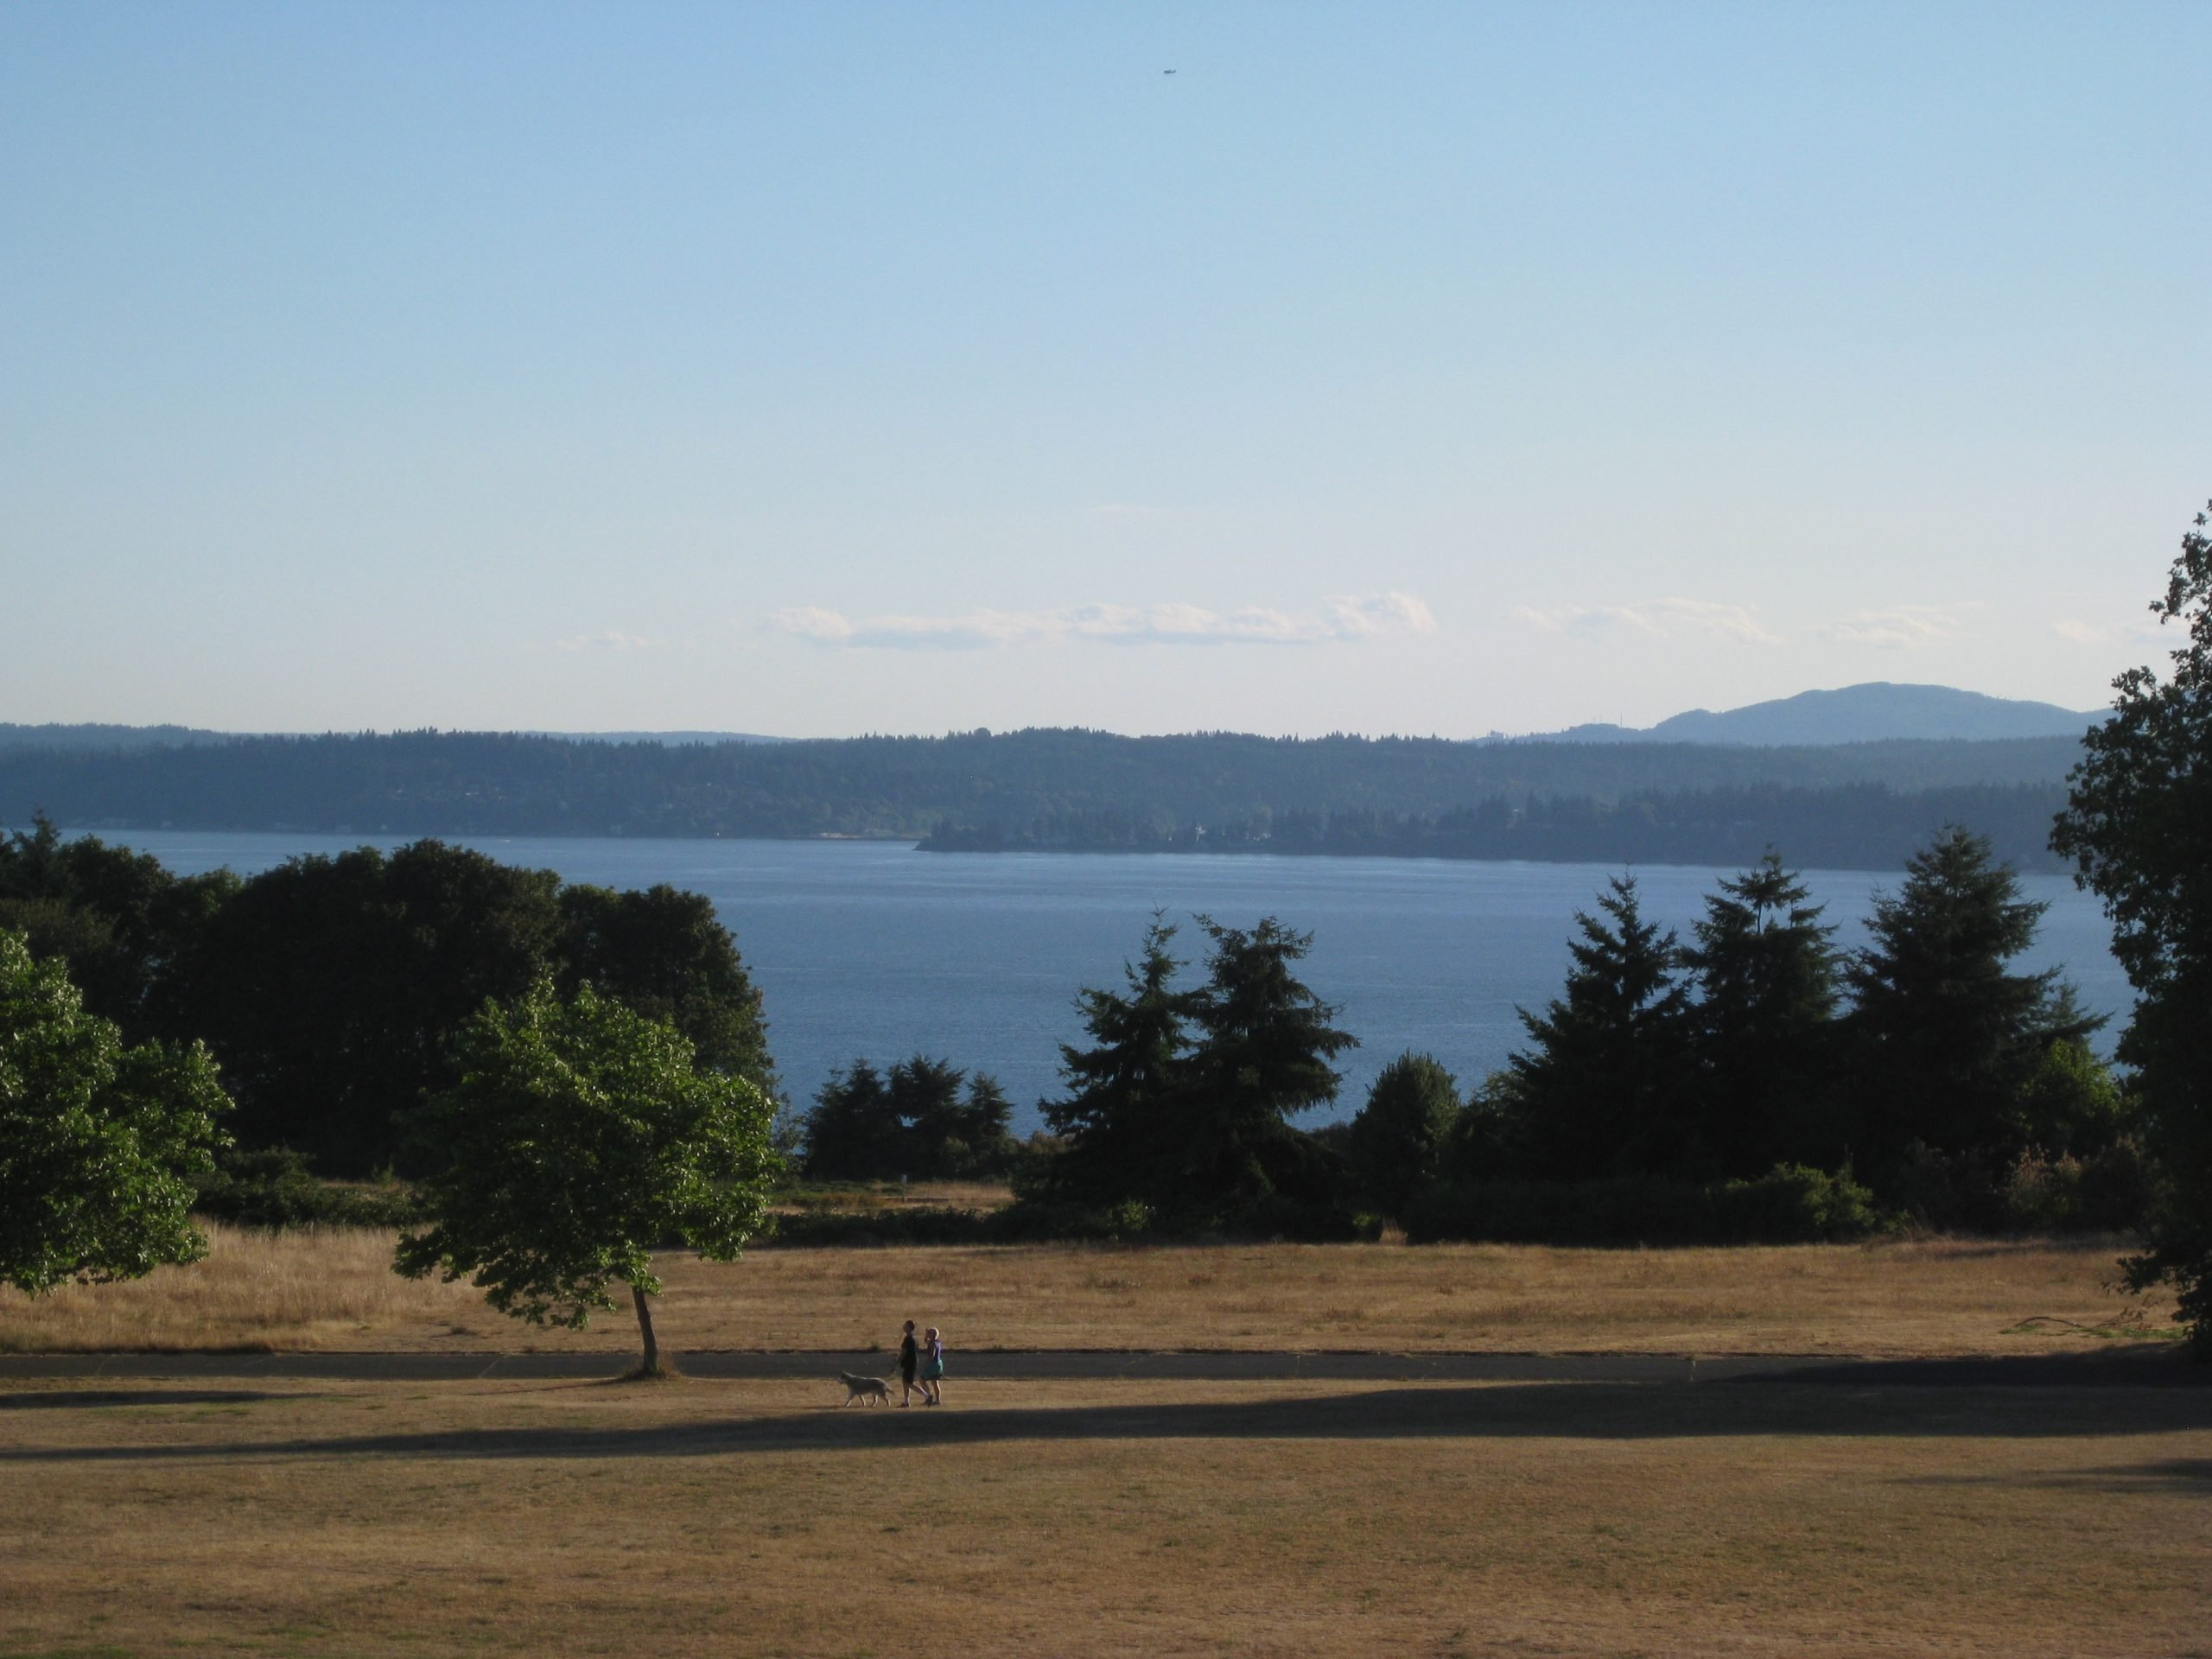 """Seattle is the """"Emerald City,"""" but its grass in this record summer heat? Brown, as we sweat it out in Seattle. (July 30, 2015)"""